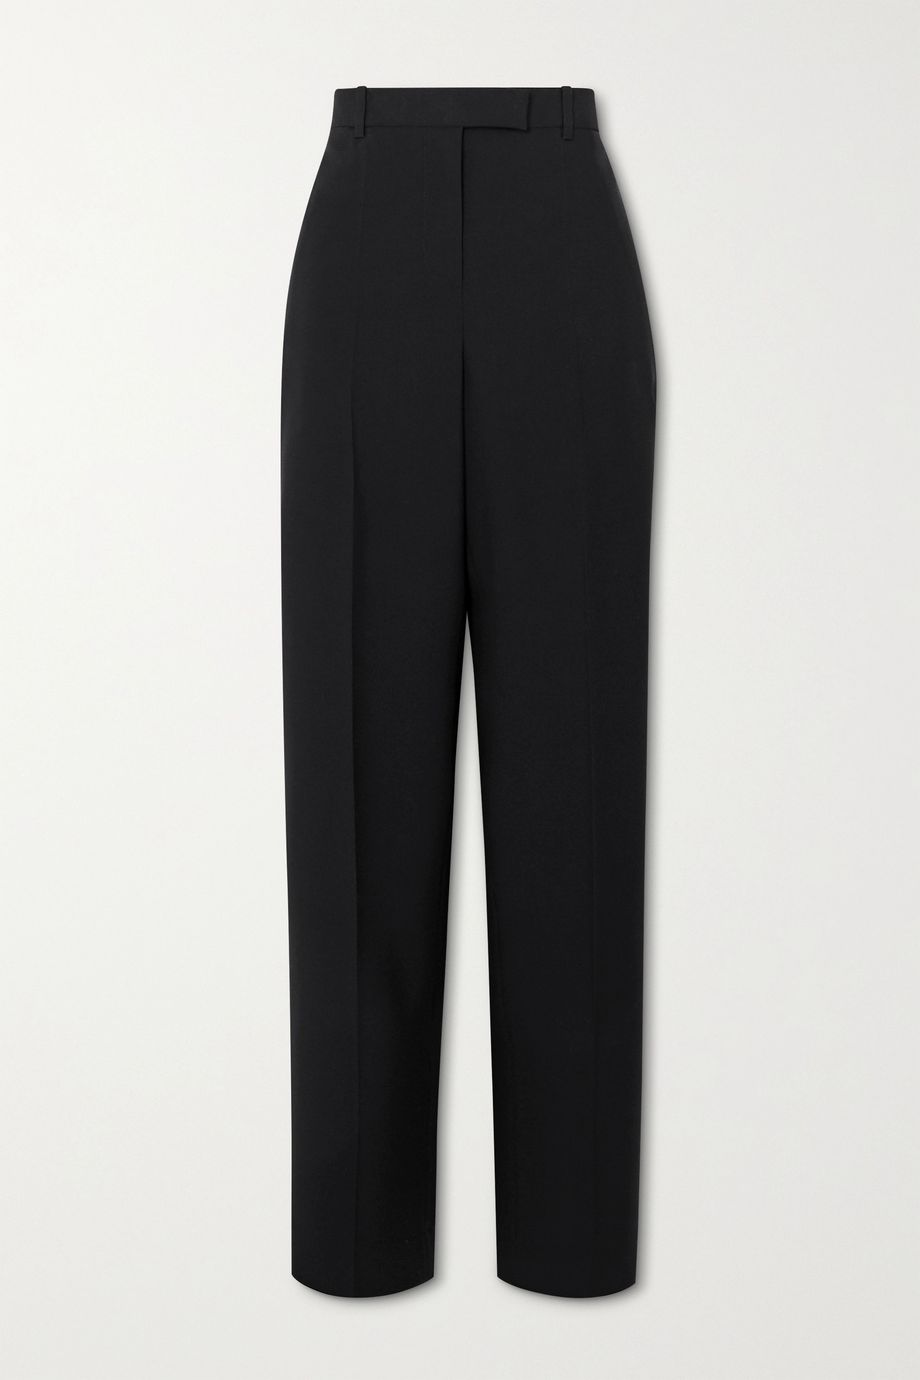 Givenchy Wool straight-leg pants